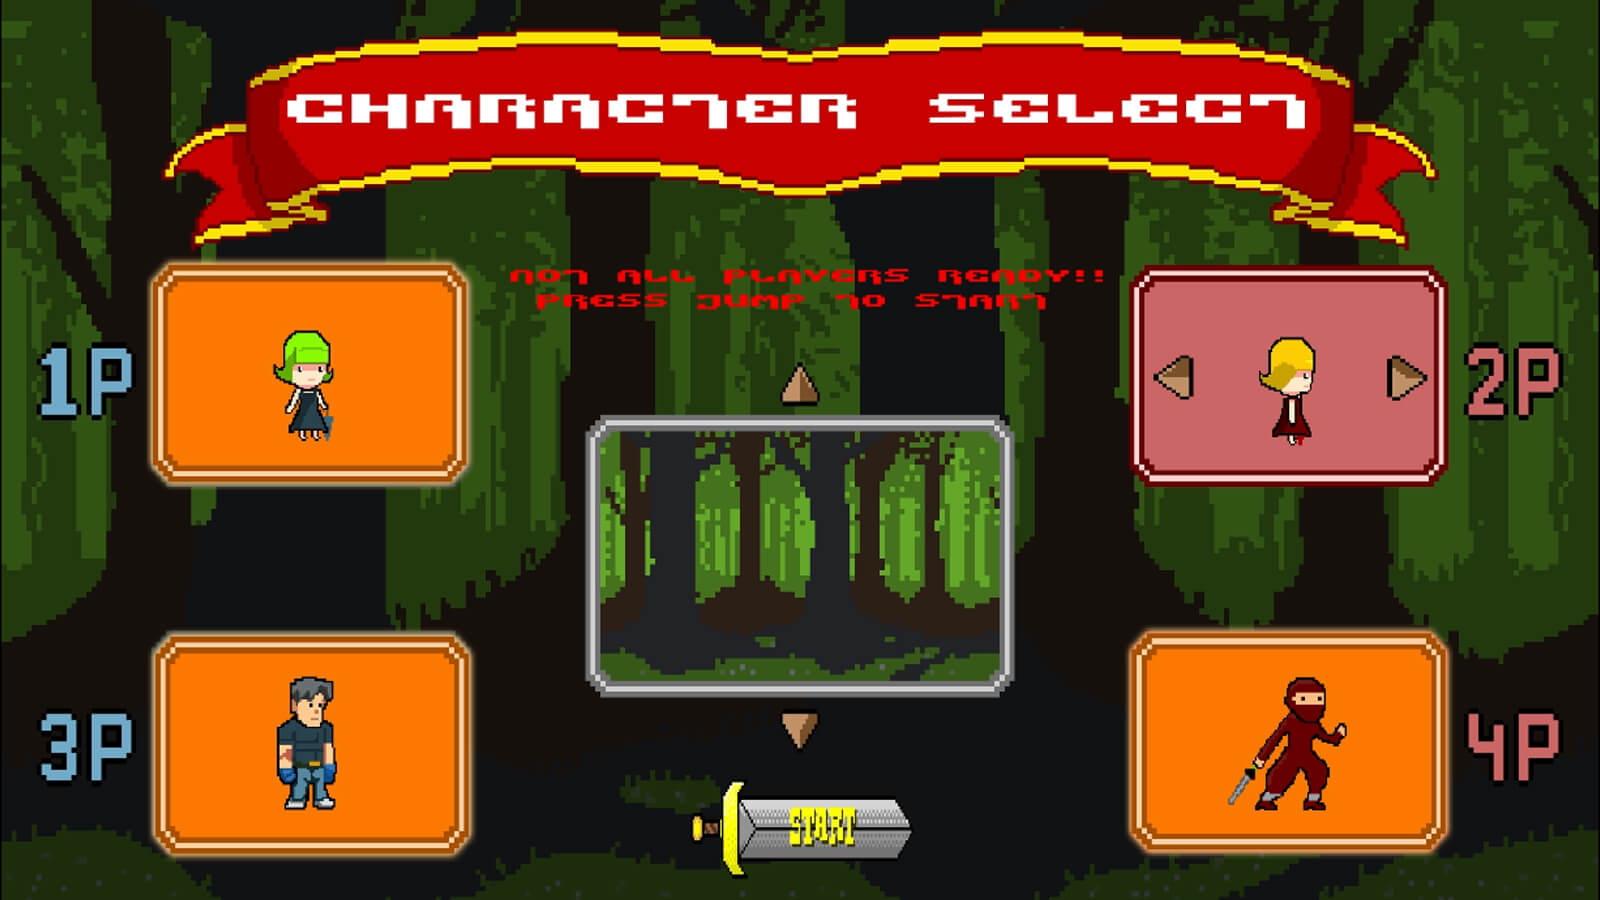 The player- and level-selection screen, currently highlighting the jungle map